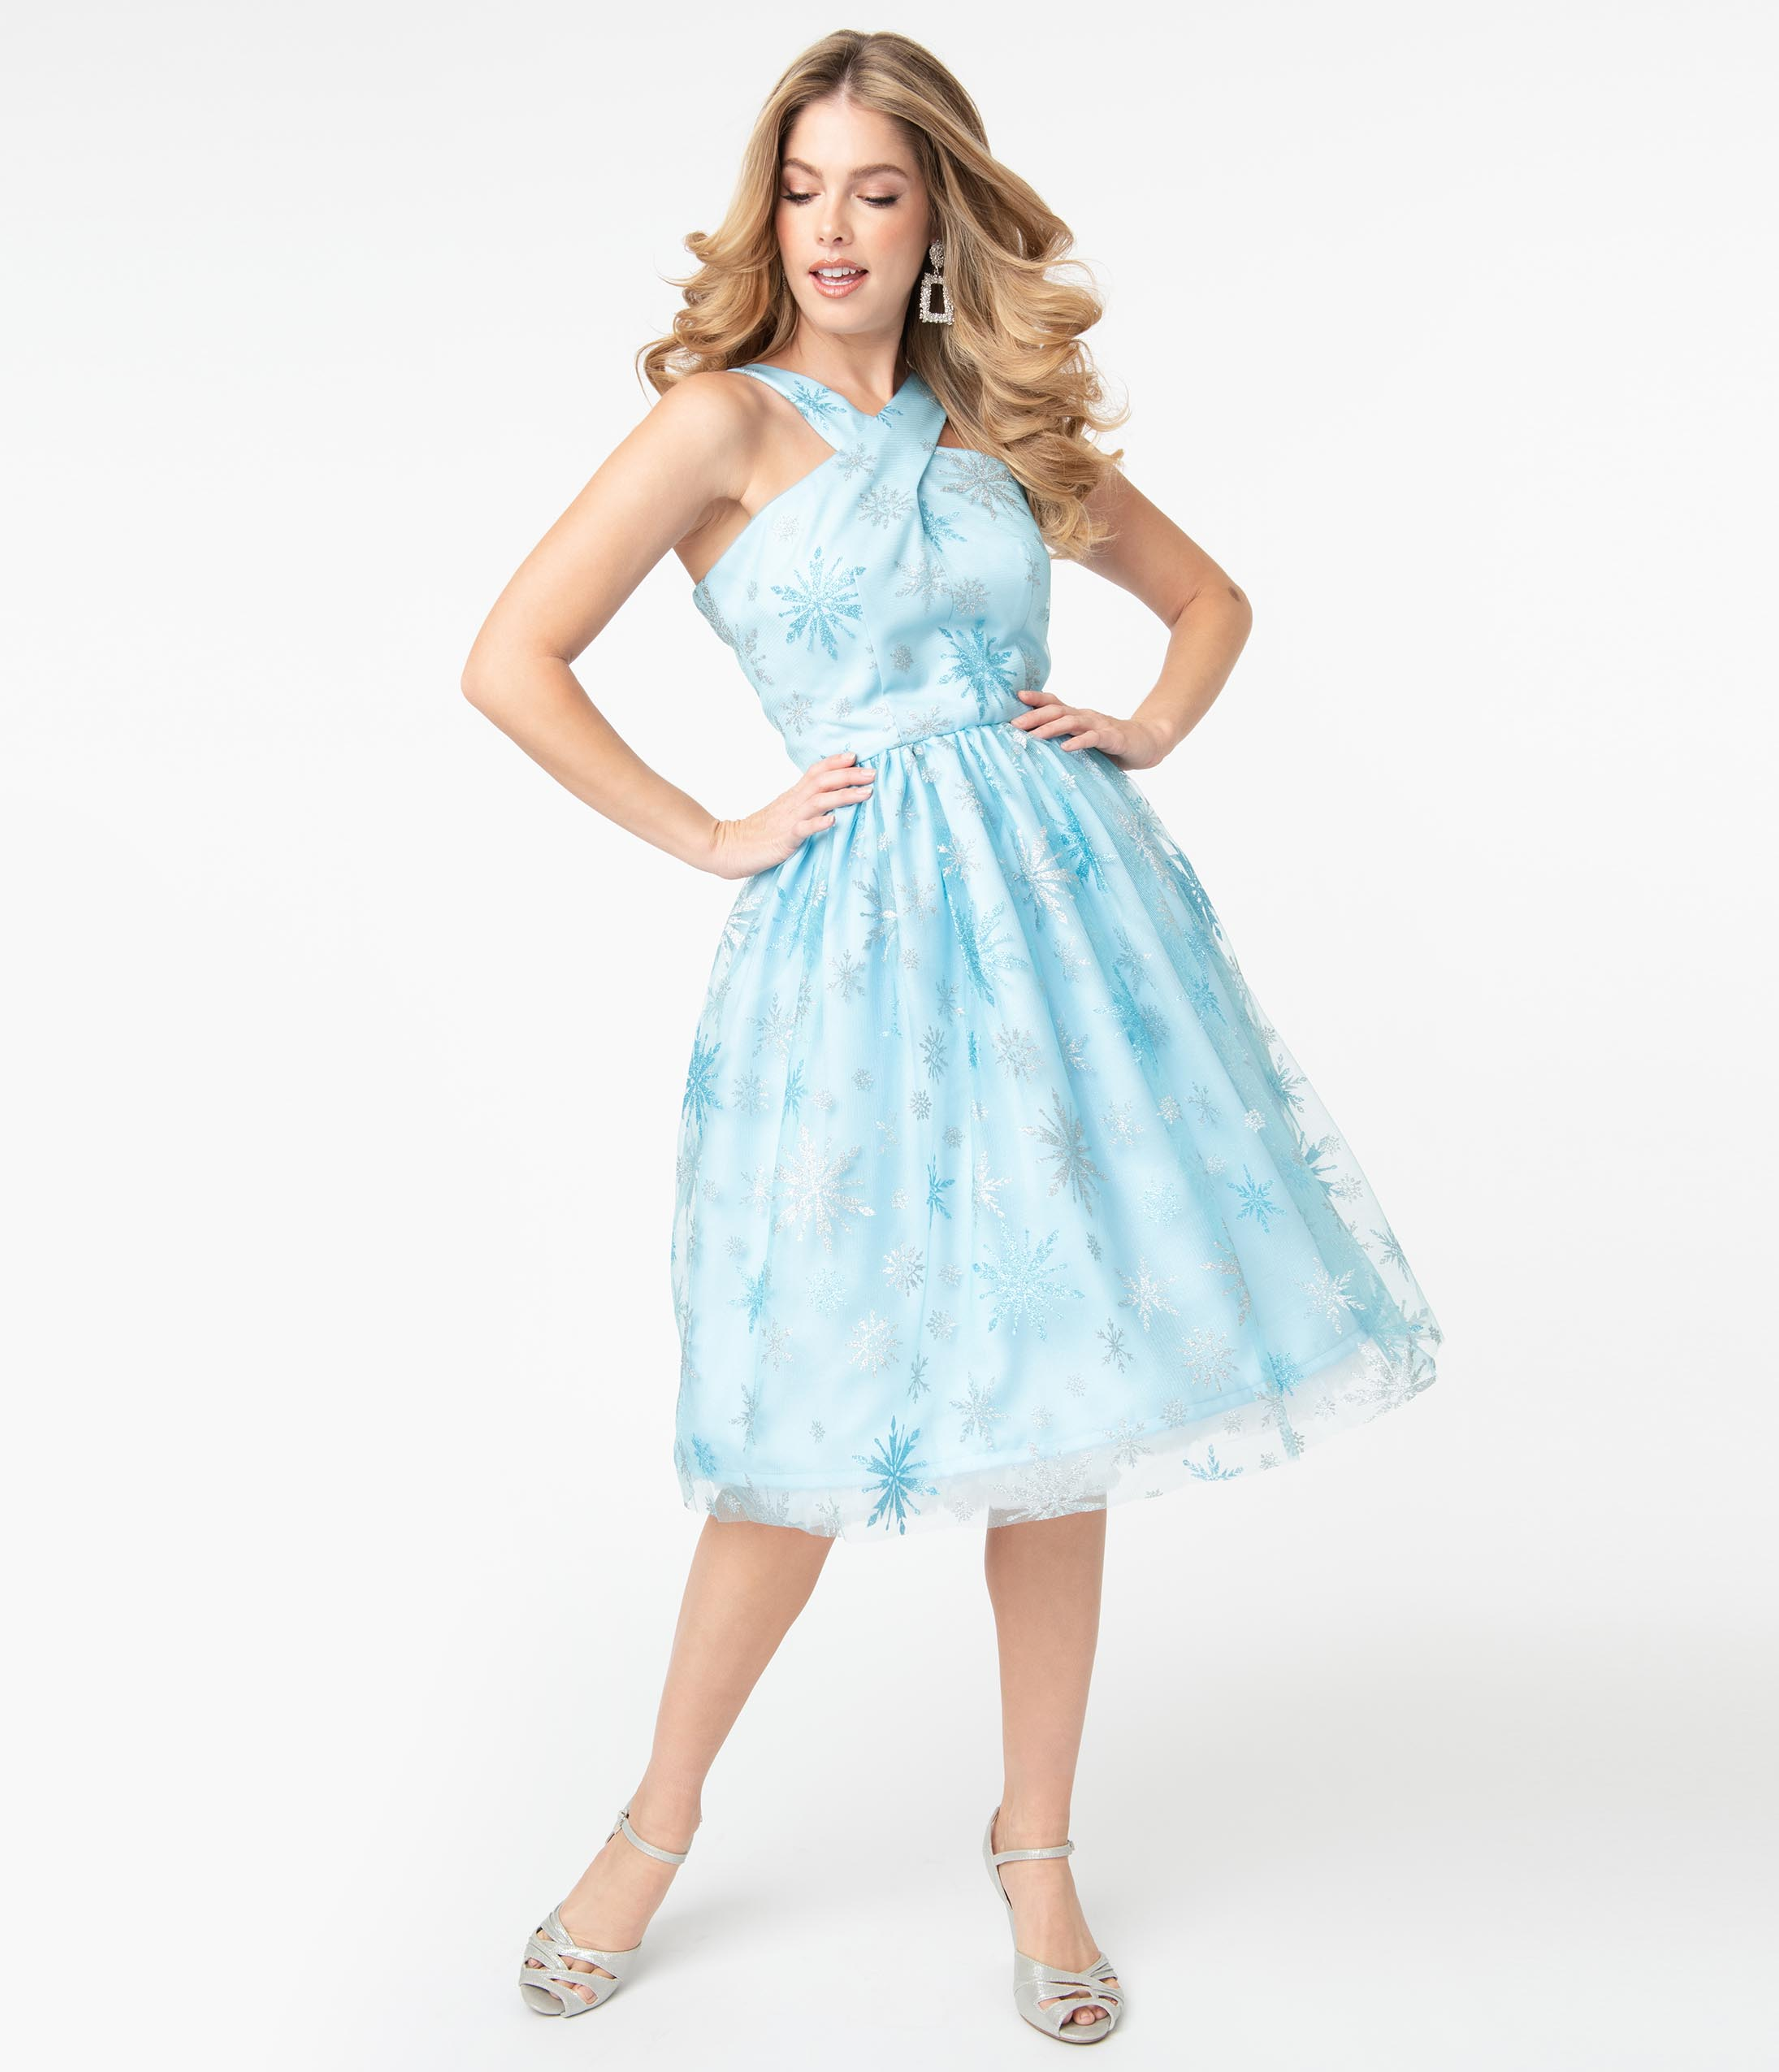 What Did Women Wear in the 1950s? 1950s Fashion Guide Light Blue  Silver Snowflake Valentina Swing Dress $88.00 AT vintagedancer.com